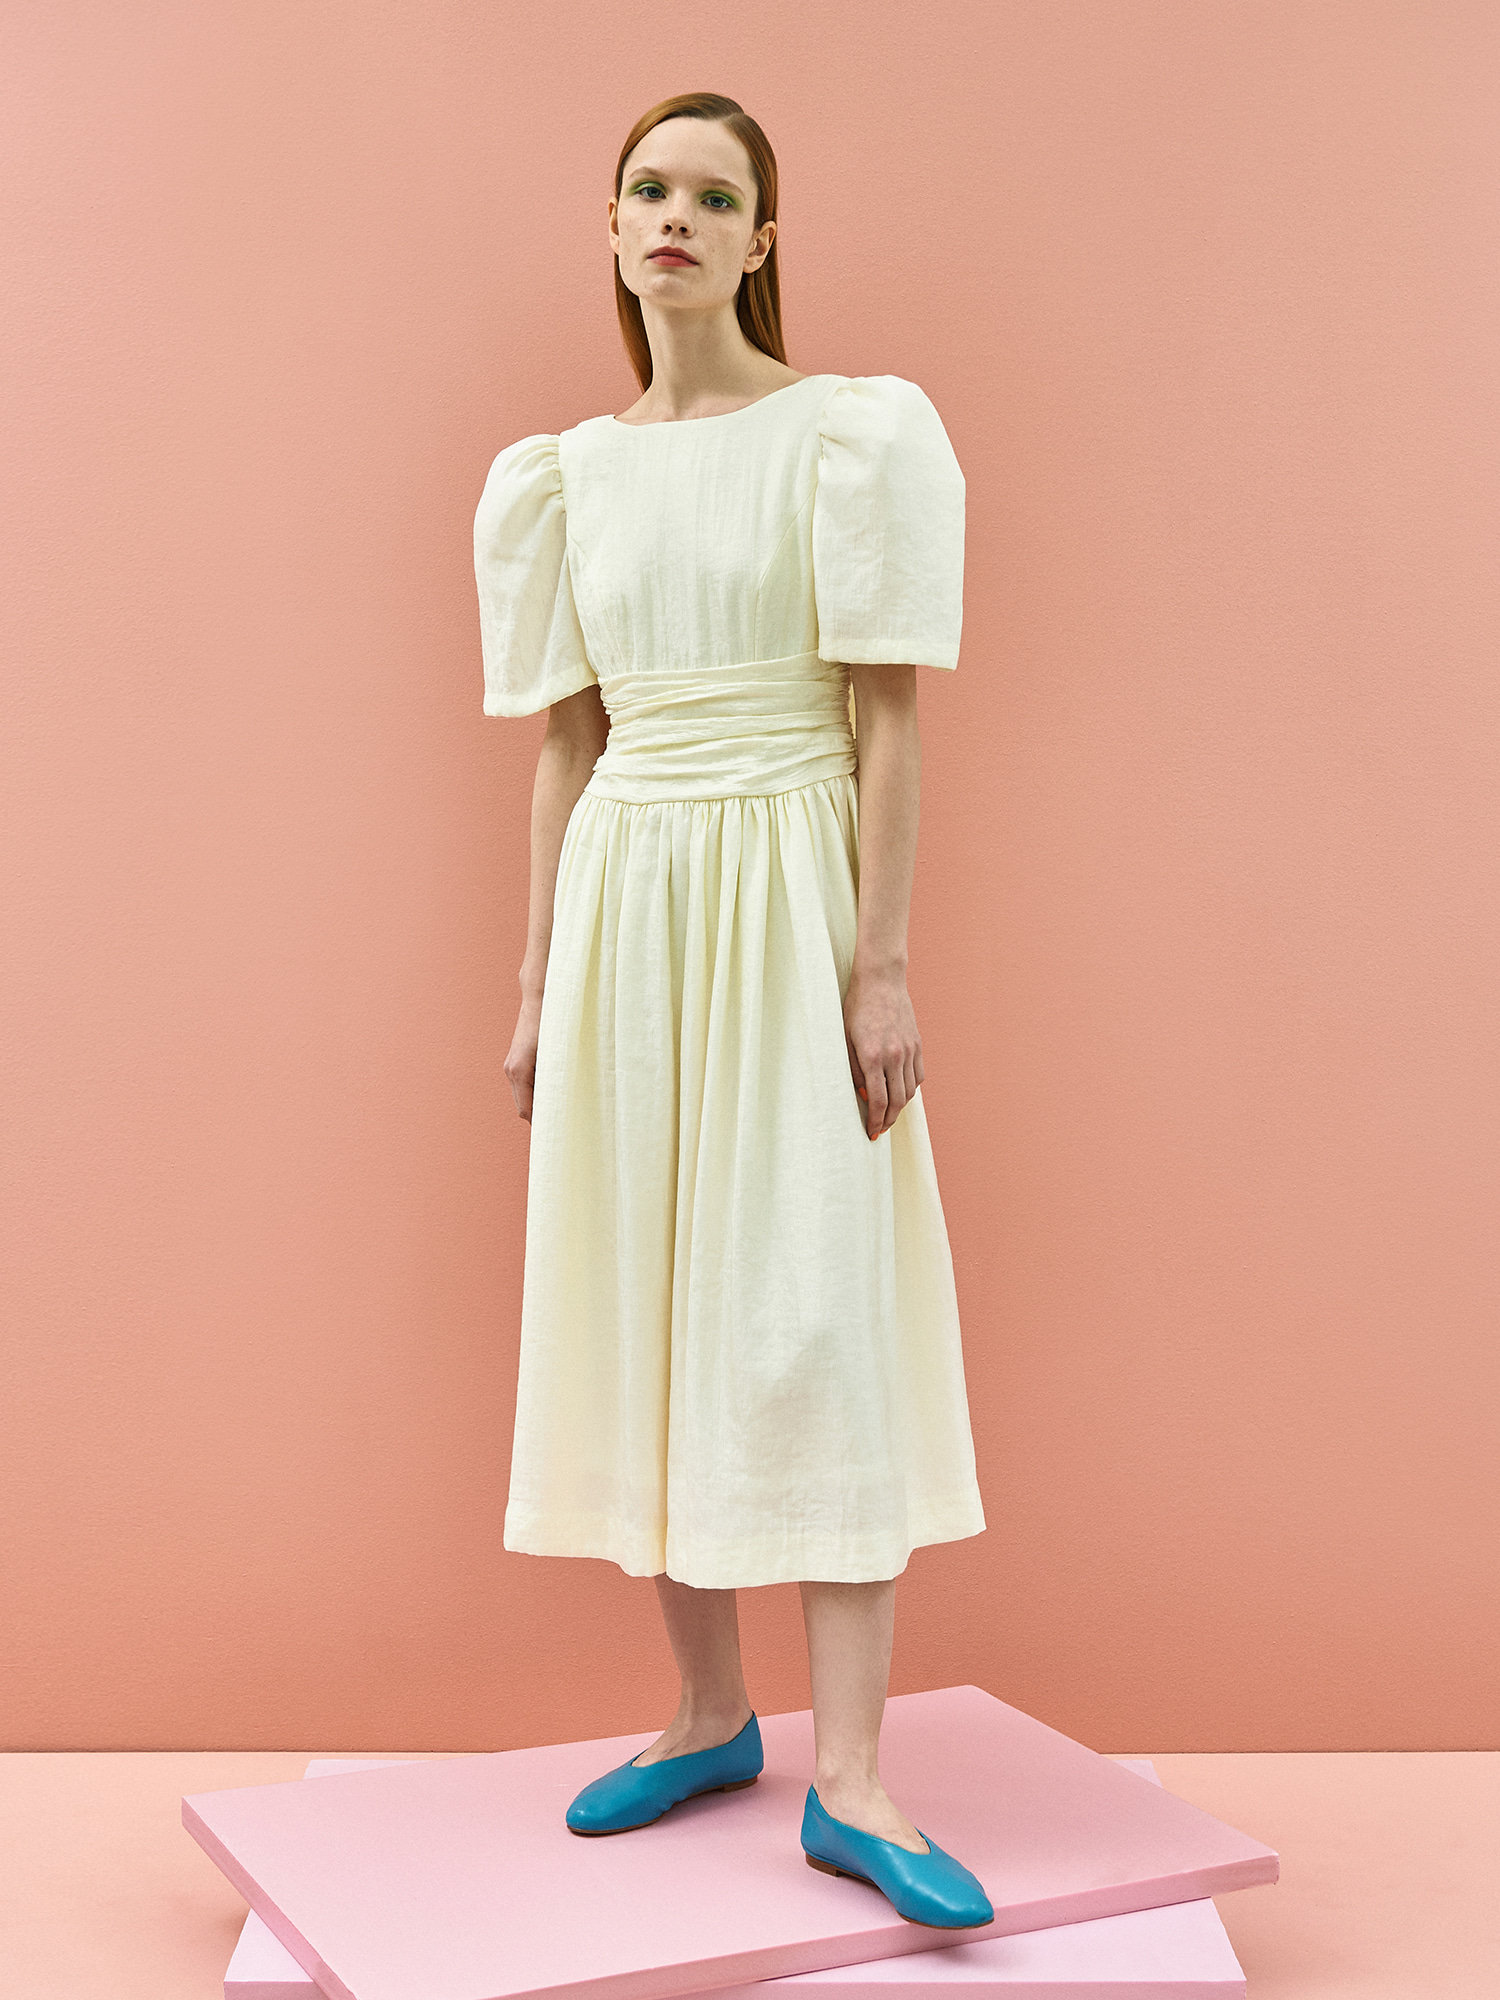 [SUMMER BIG SALE]Retro Ribbon Dress in Cream